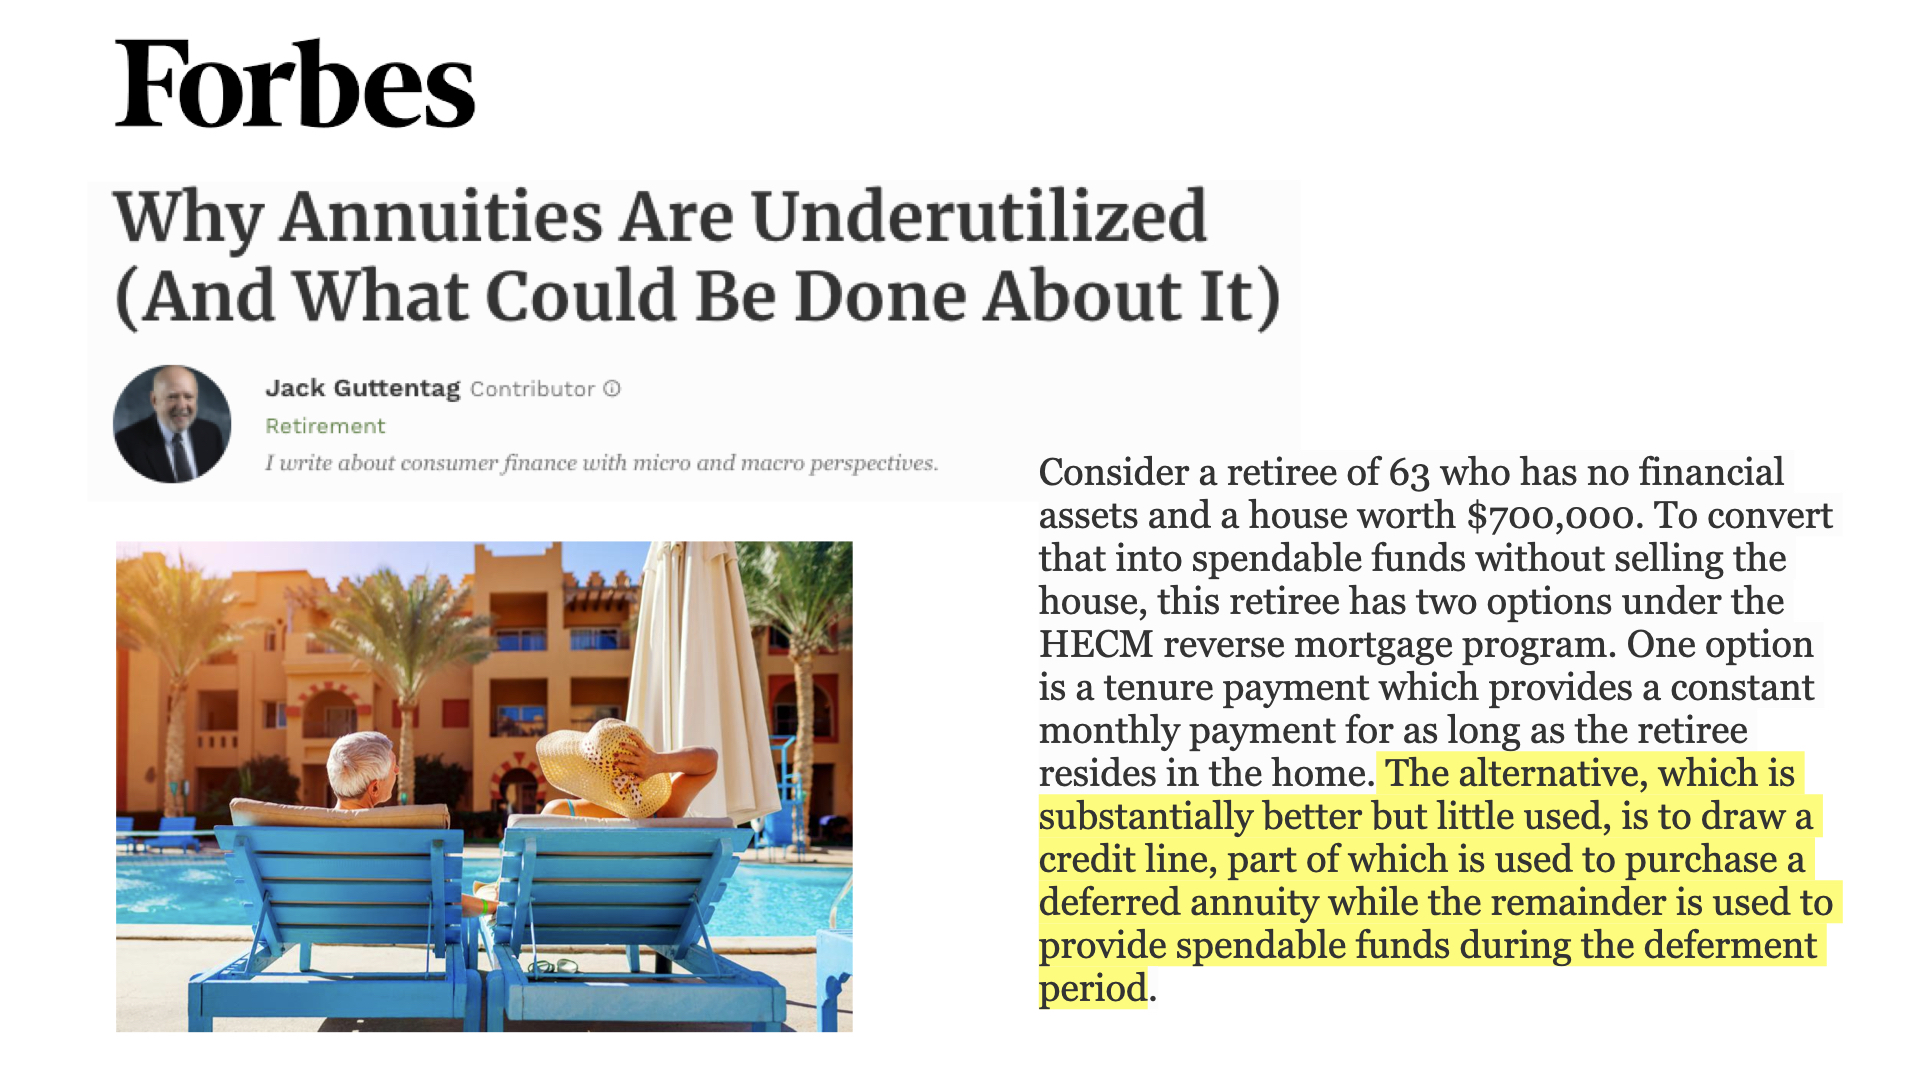 Jack Guttentag's recent column in Forbes addresses the taboo subject of combining annuities with a reverse mortgage